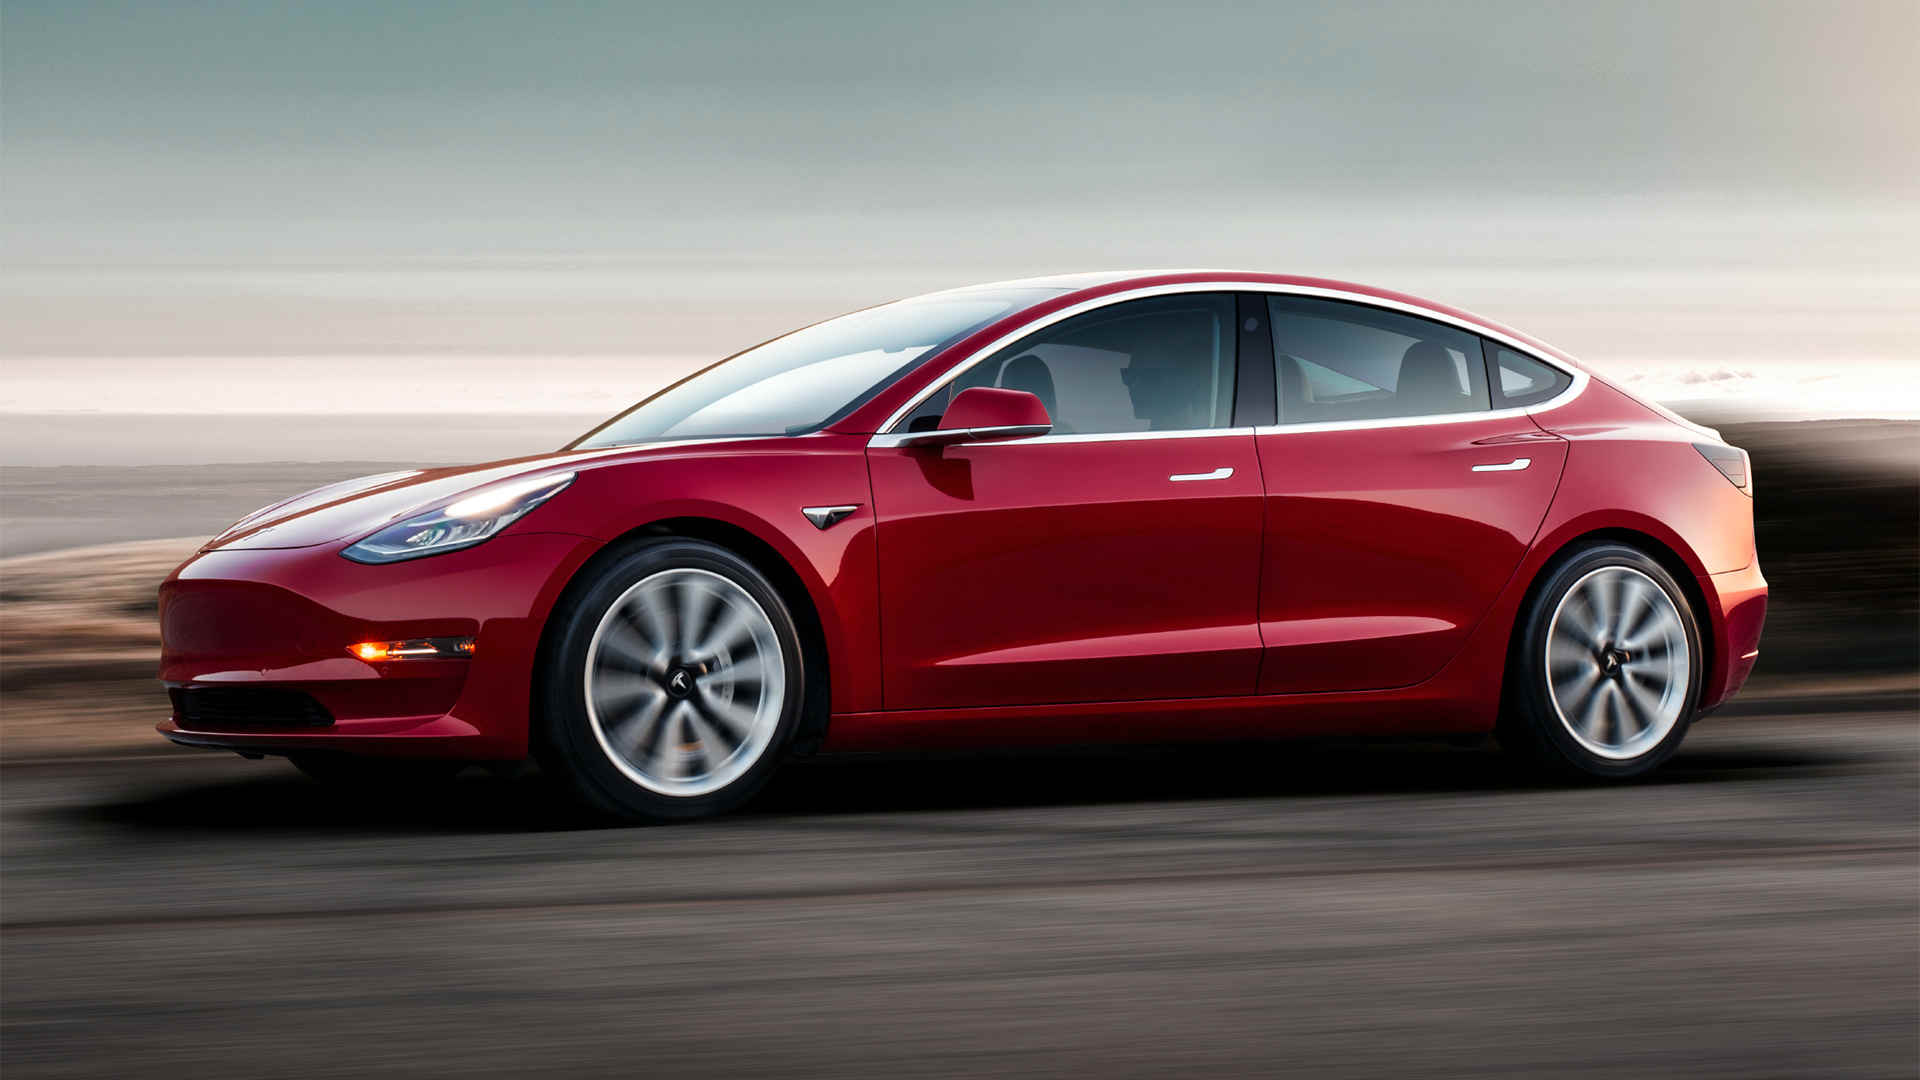 Tesla Model 3 is Saving the Day for Elon Musk and Company